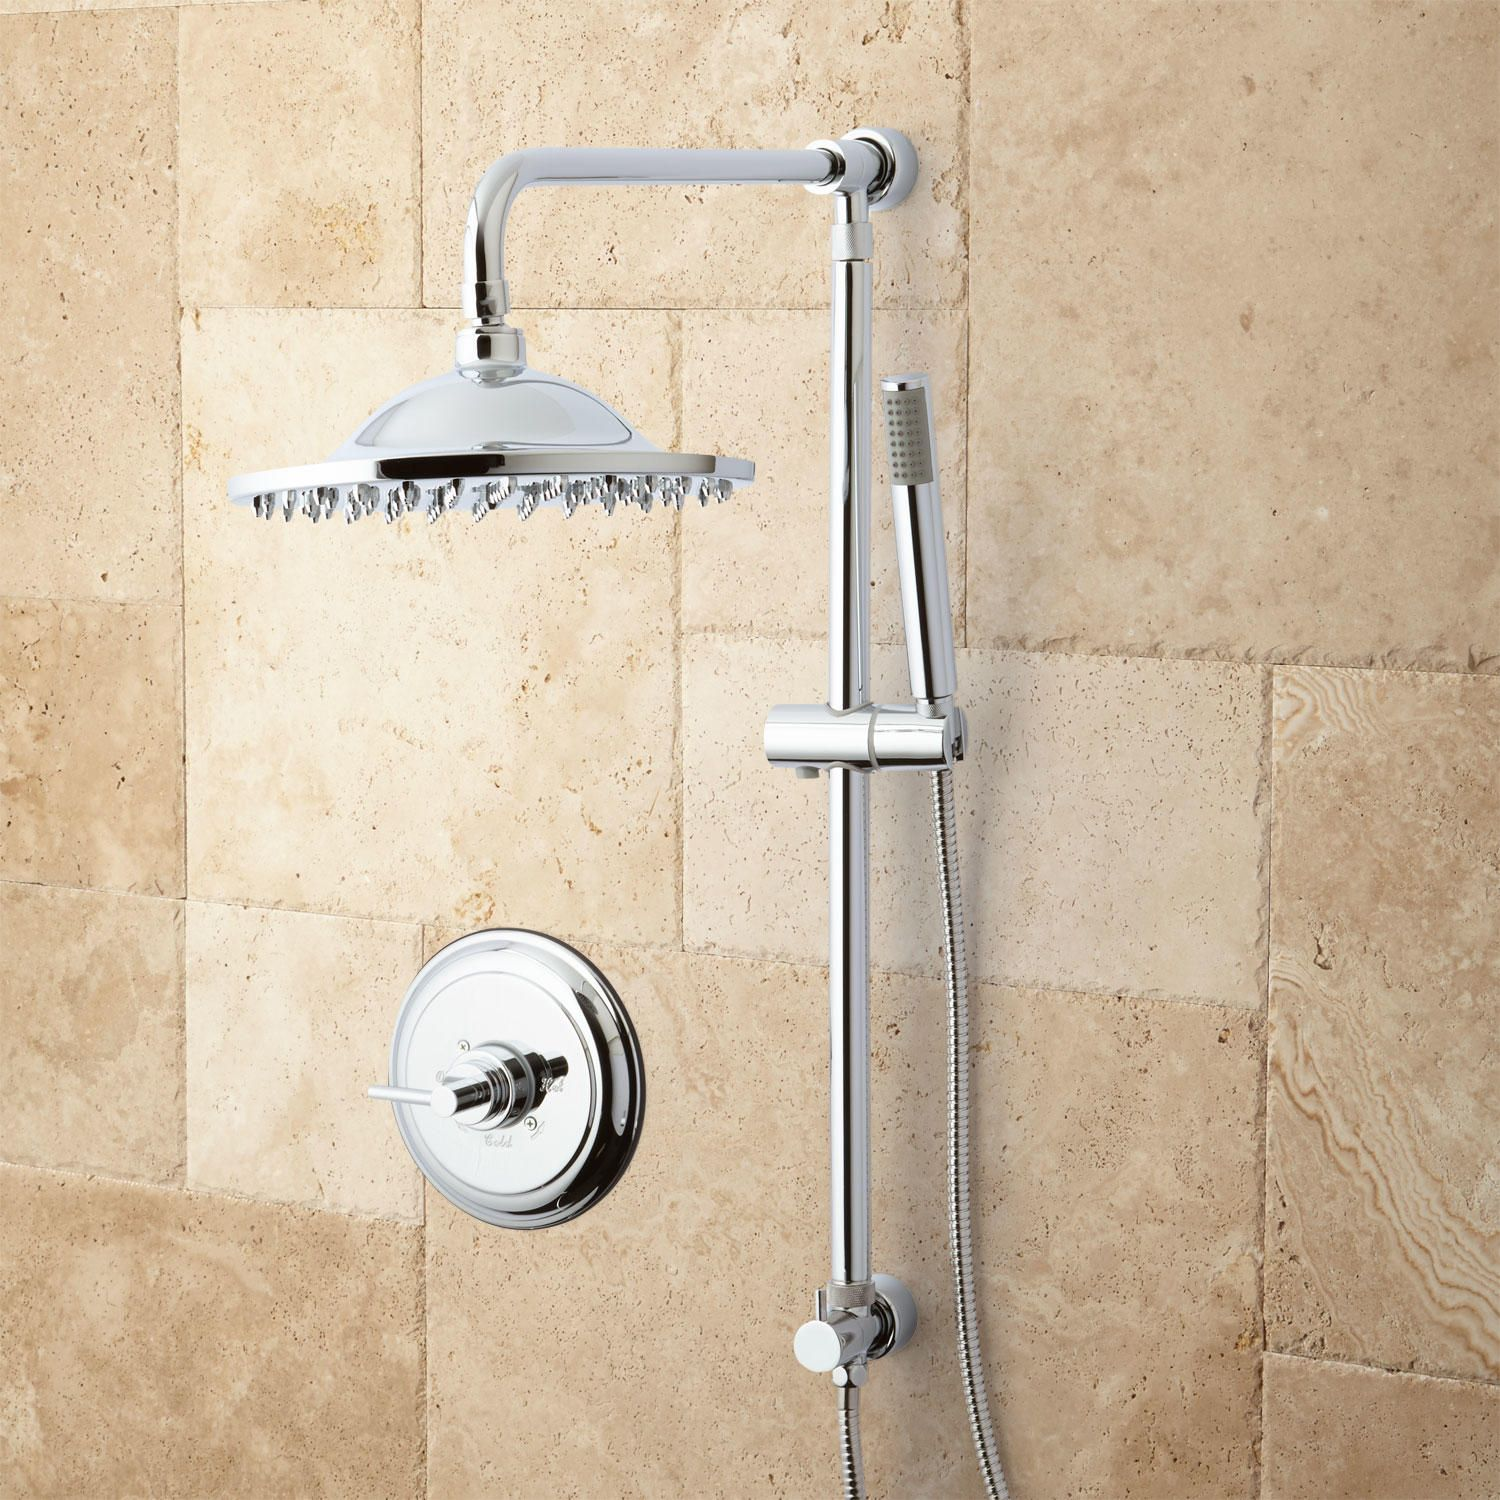 Bostonian Brass Rainfall Nozzle Shower System with Hand Shower - Bathroom